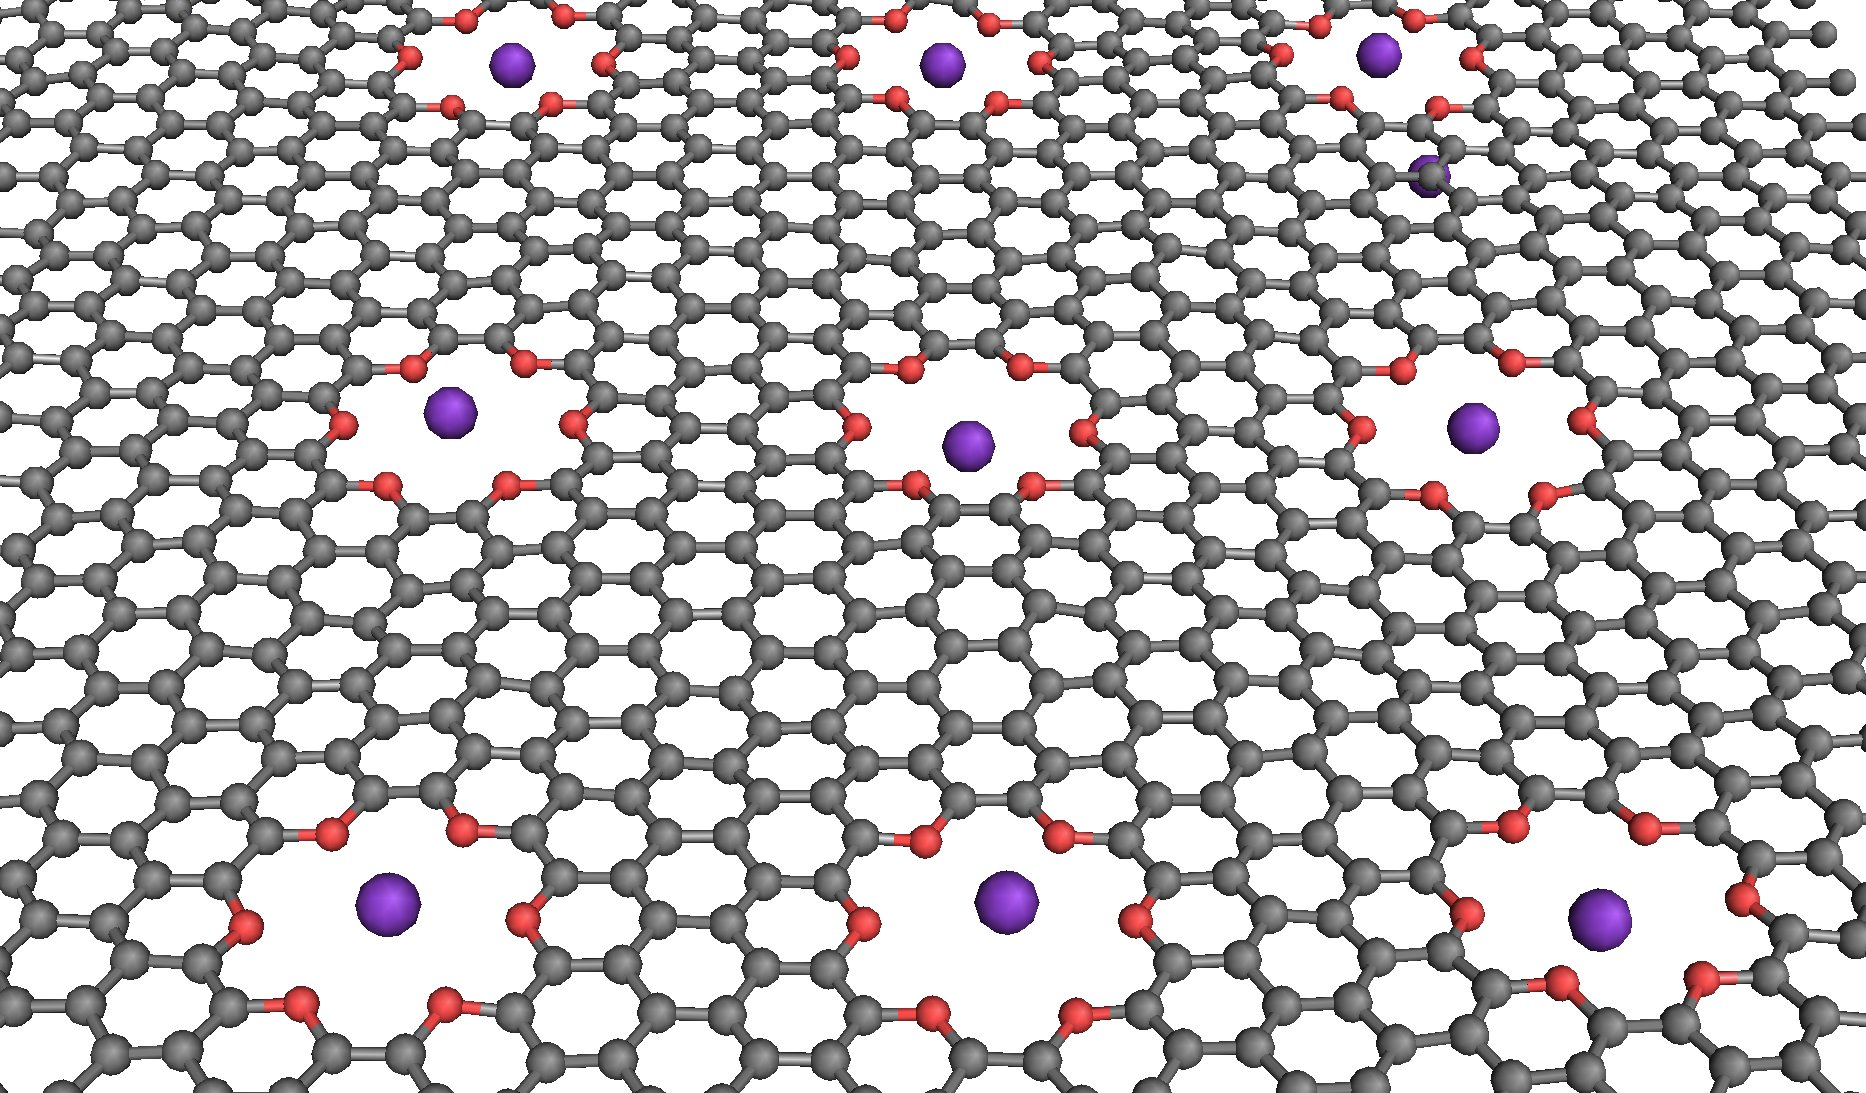 Researchers Simulate Simple Logic For Nanofluidic Computing Parallel Circuit Simplest Physics Ever Nist Simulated Computer Operations In A Saline Solution With Graphene Membrane Grey Containing Oxygen Lined Pores Red That Can Trap